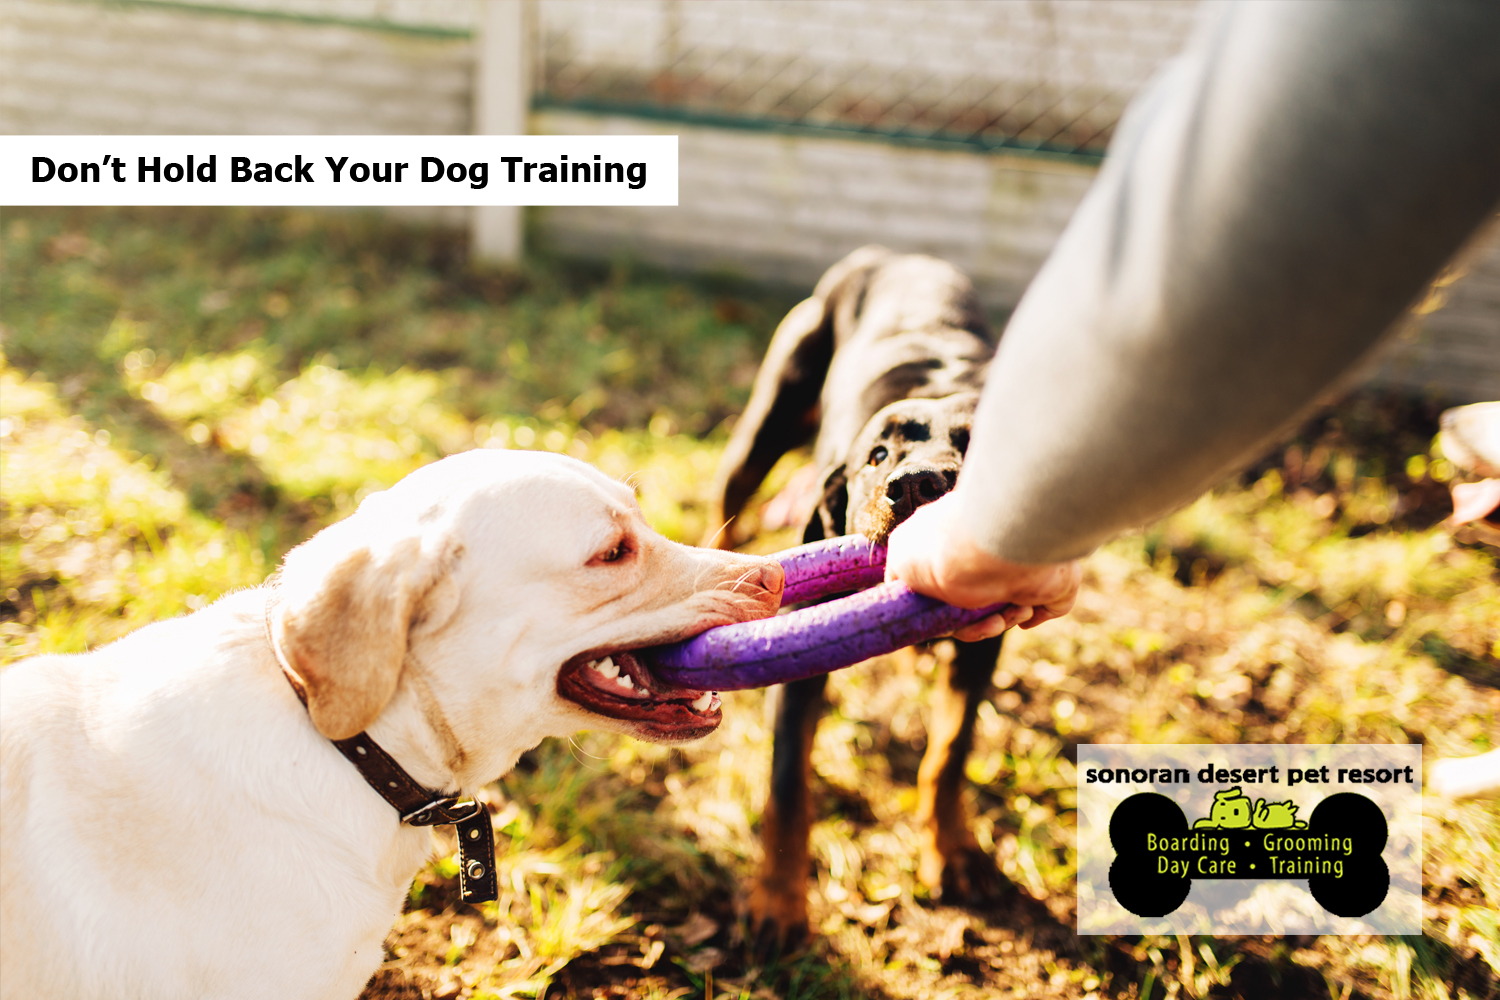 Don't Hold Back Your Dog Training